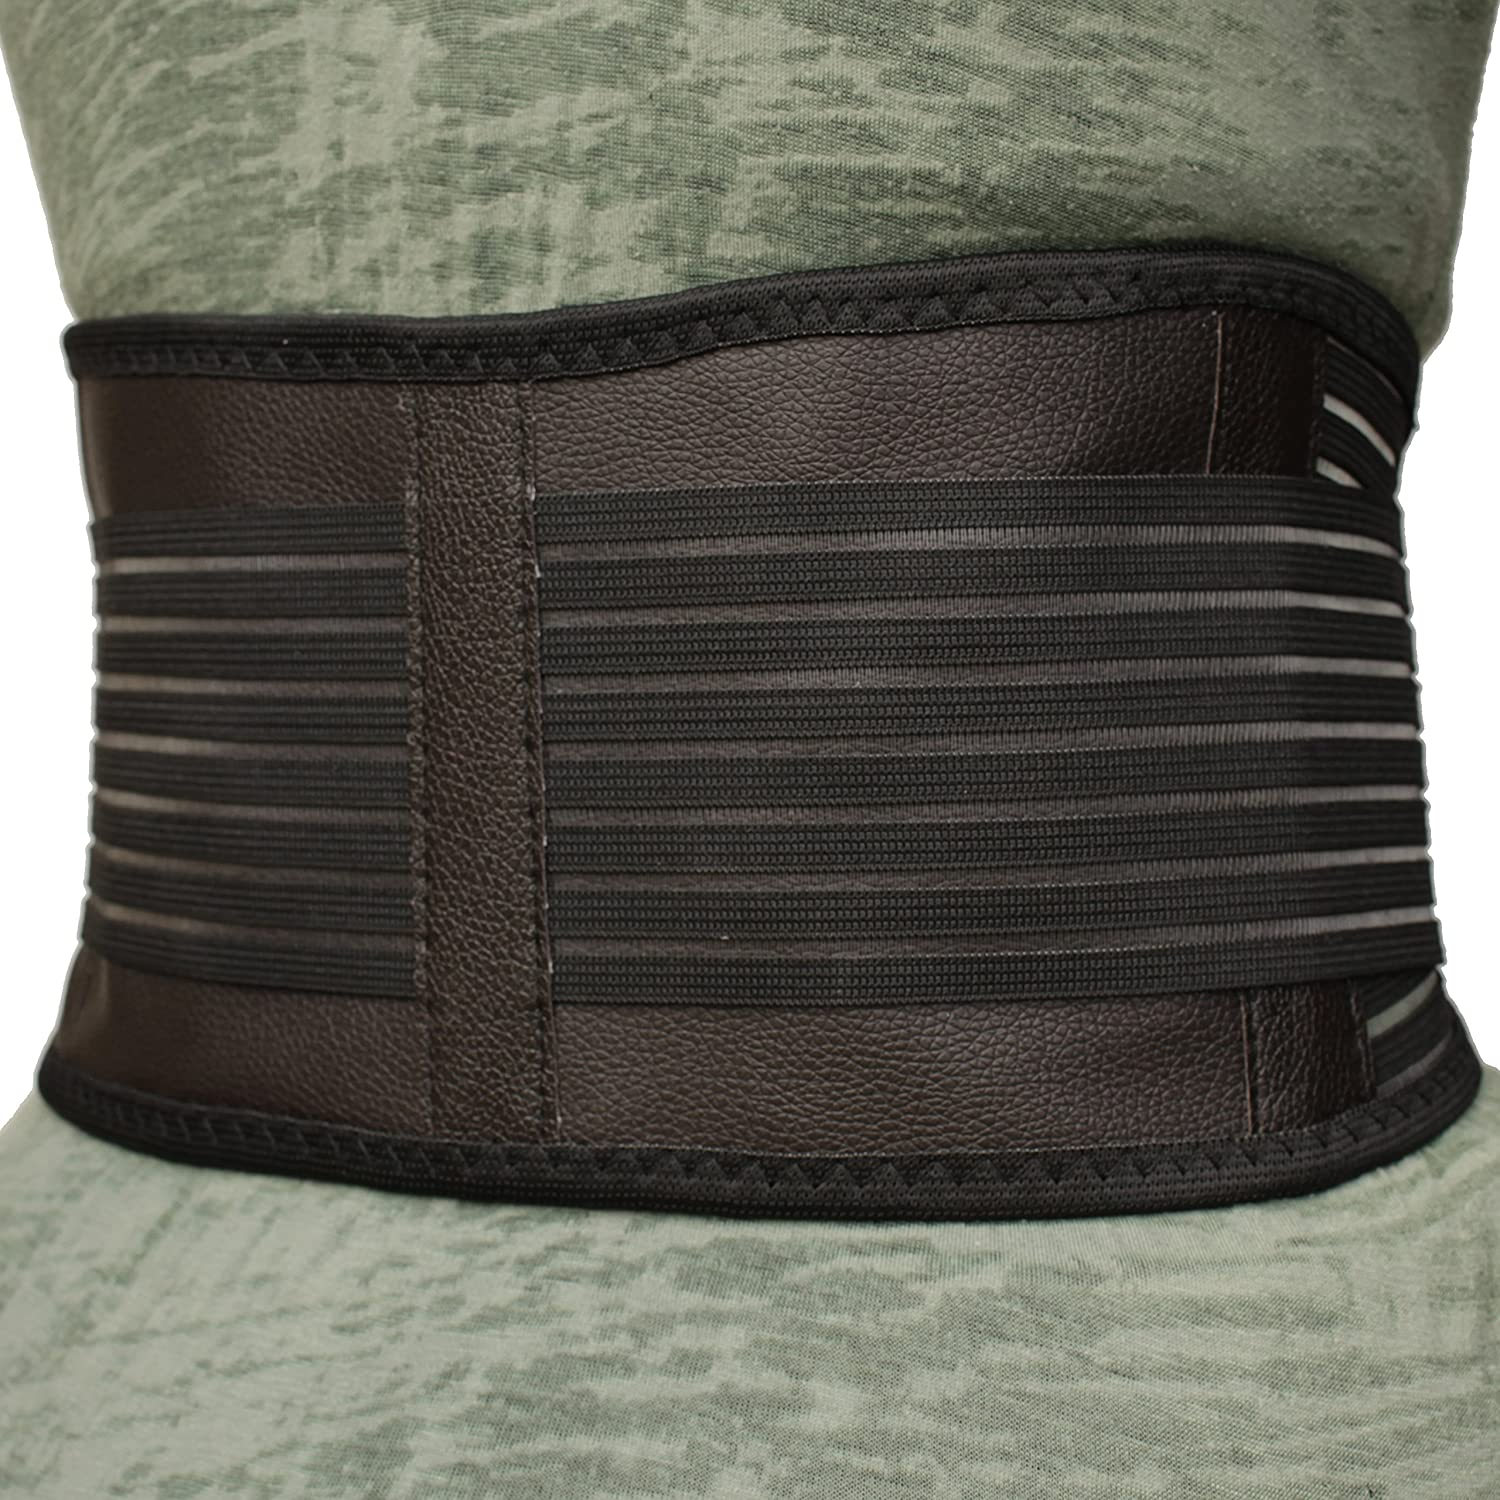 Fiery Large special price !! Pro Self-Heating Back XL Store Support L